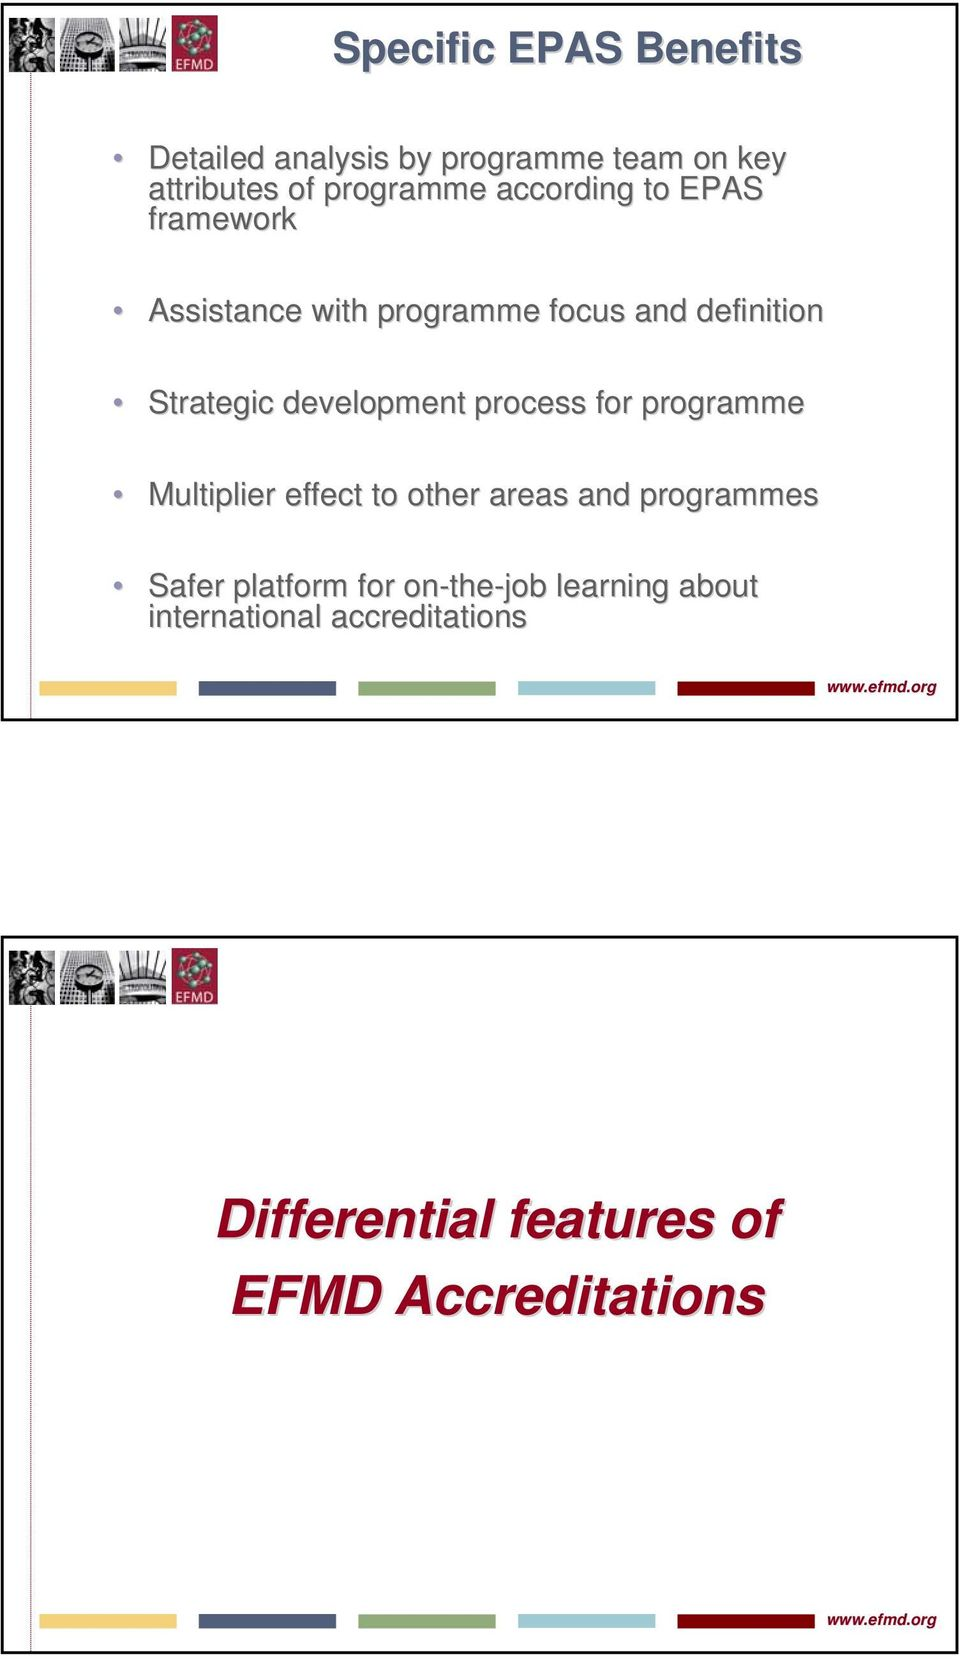 development process for programme Multiplier effect to other areas and programmes Safer